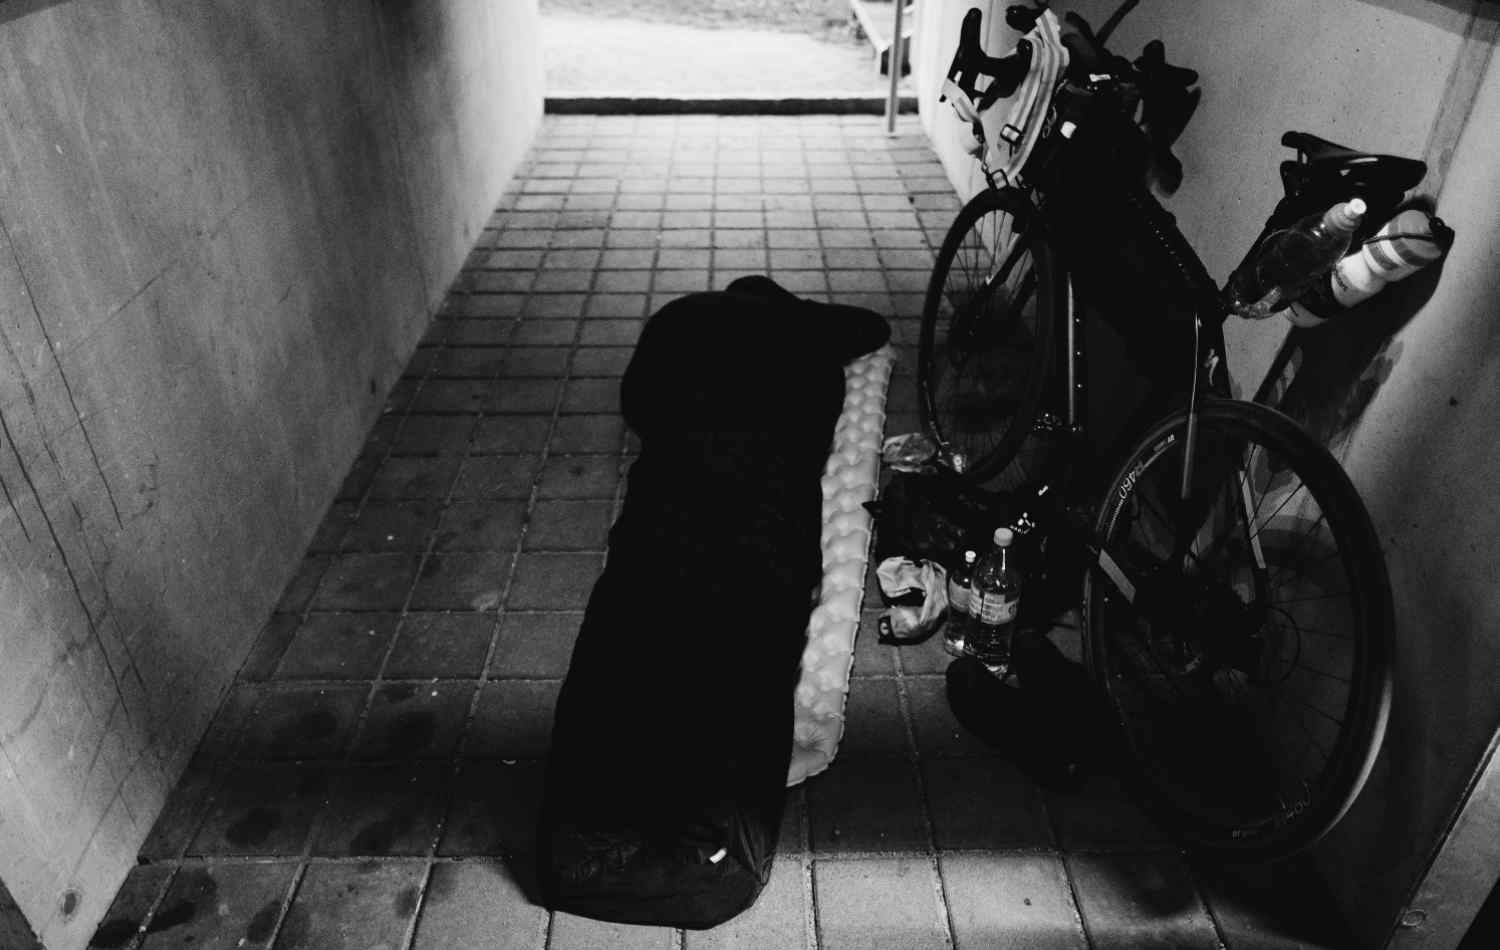 A cyclist into a sleeping bag in the floor next to his bike with a full bikepacking gear